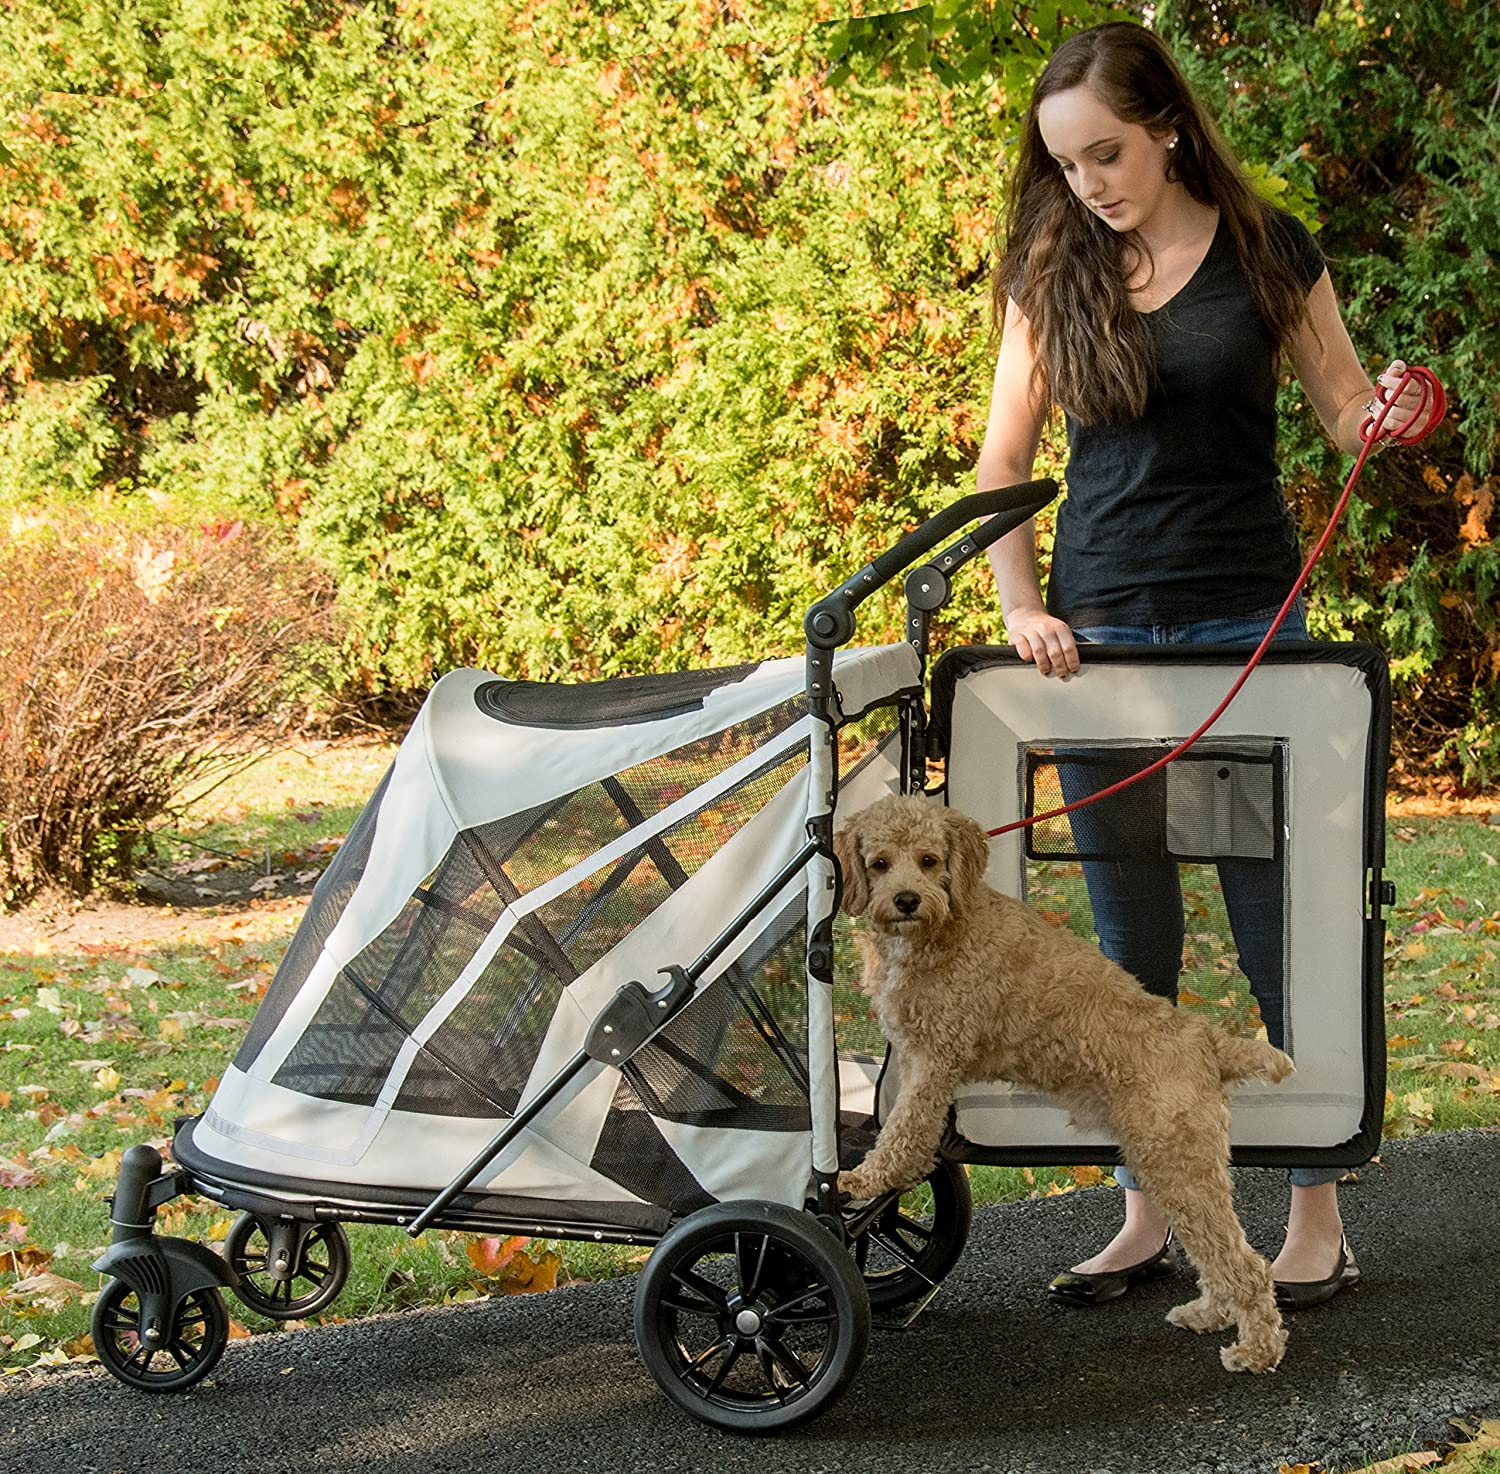 mobility aids for senior dogs - dog strollers